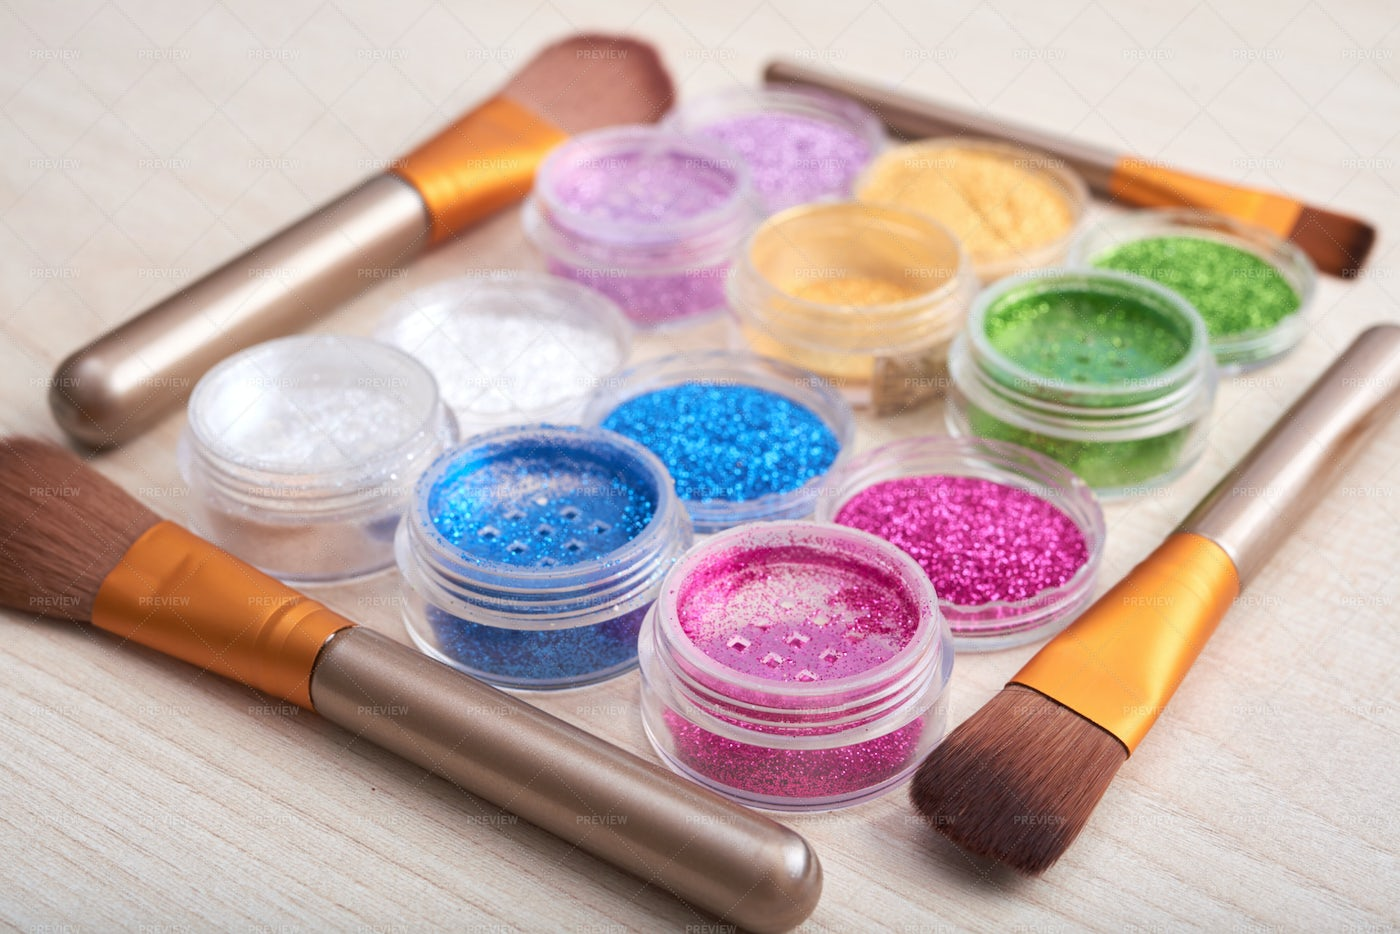 Arrangement Of Glitters With...: Stock Photos